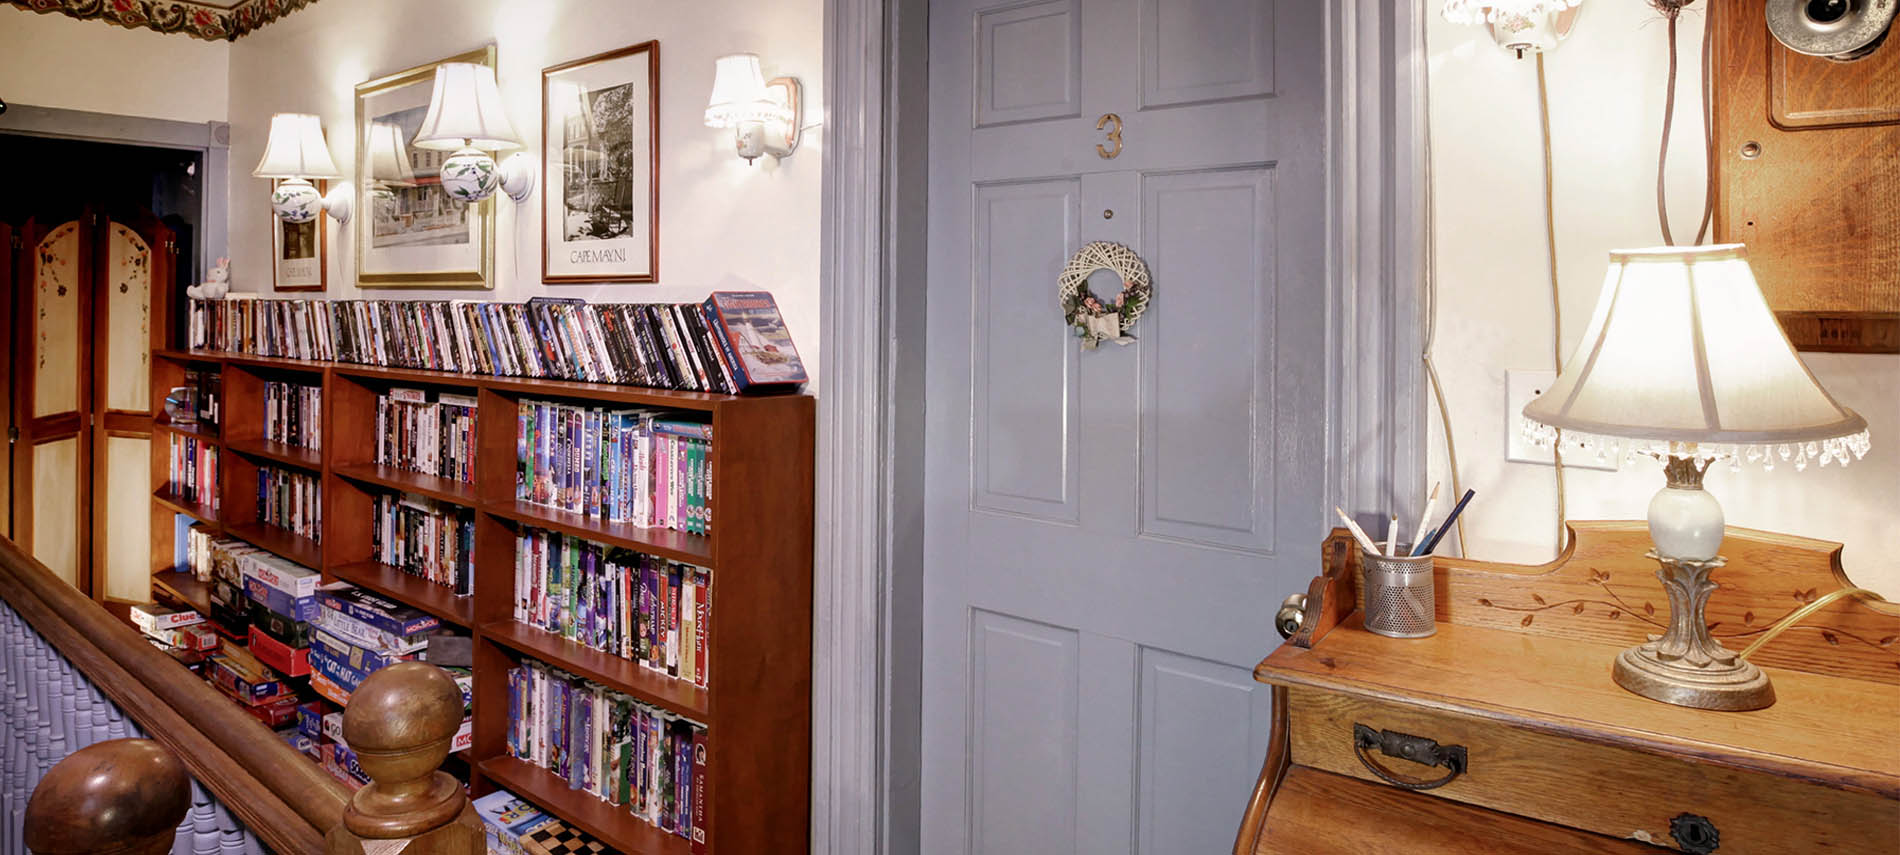 A bookcase packed with books and games in the hallway of a house.